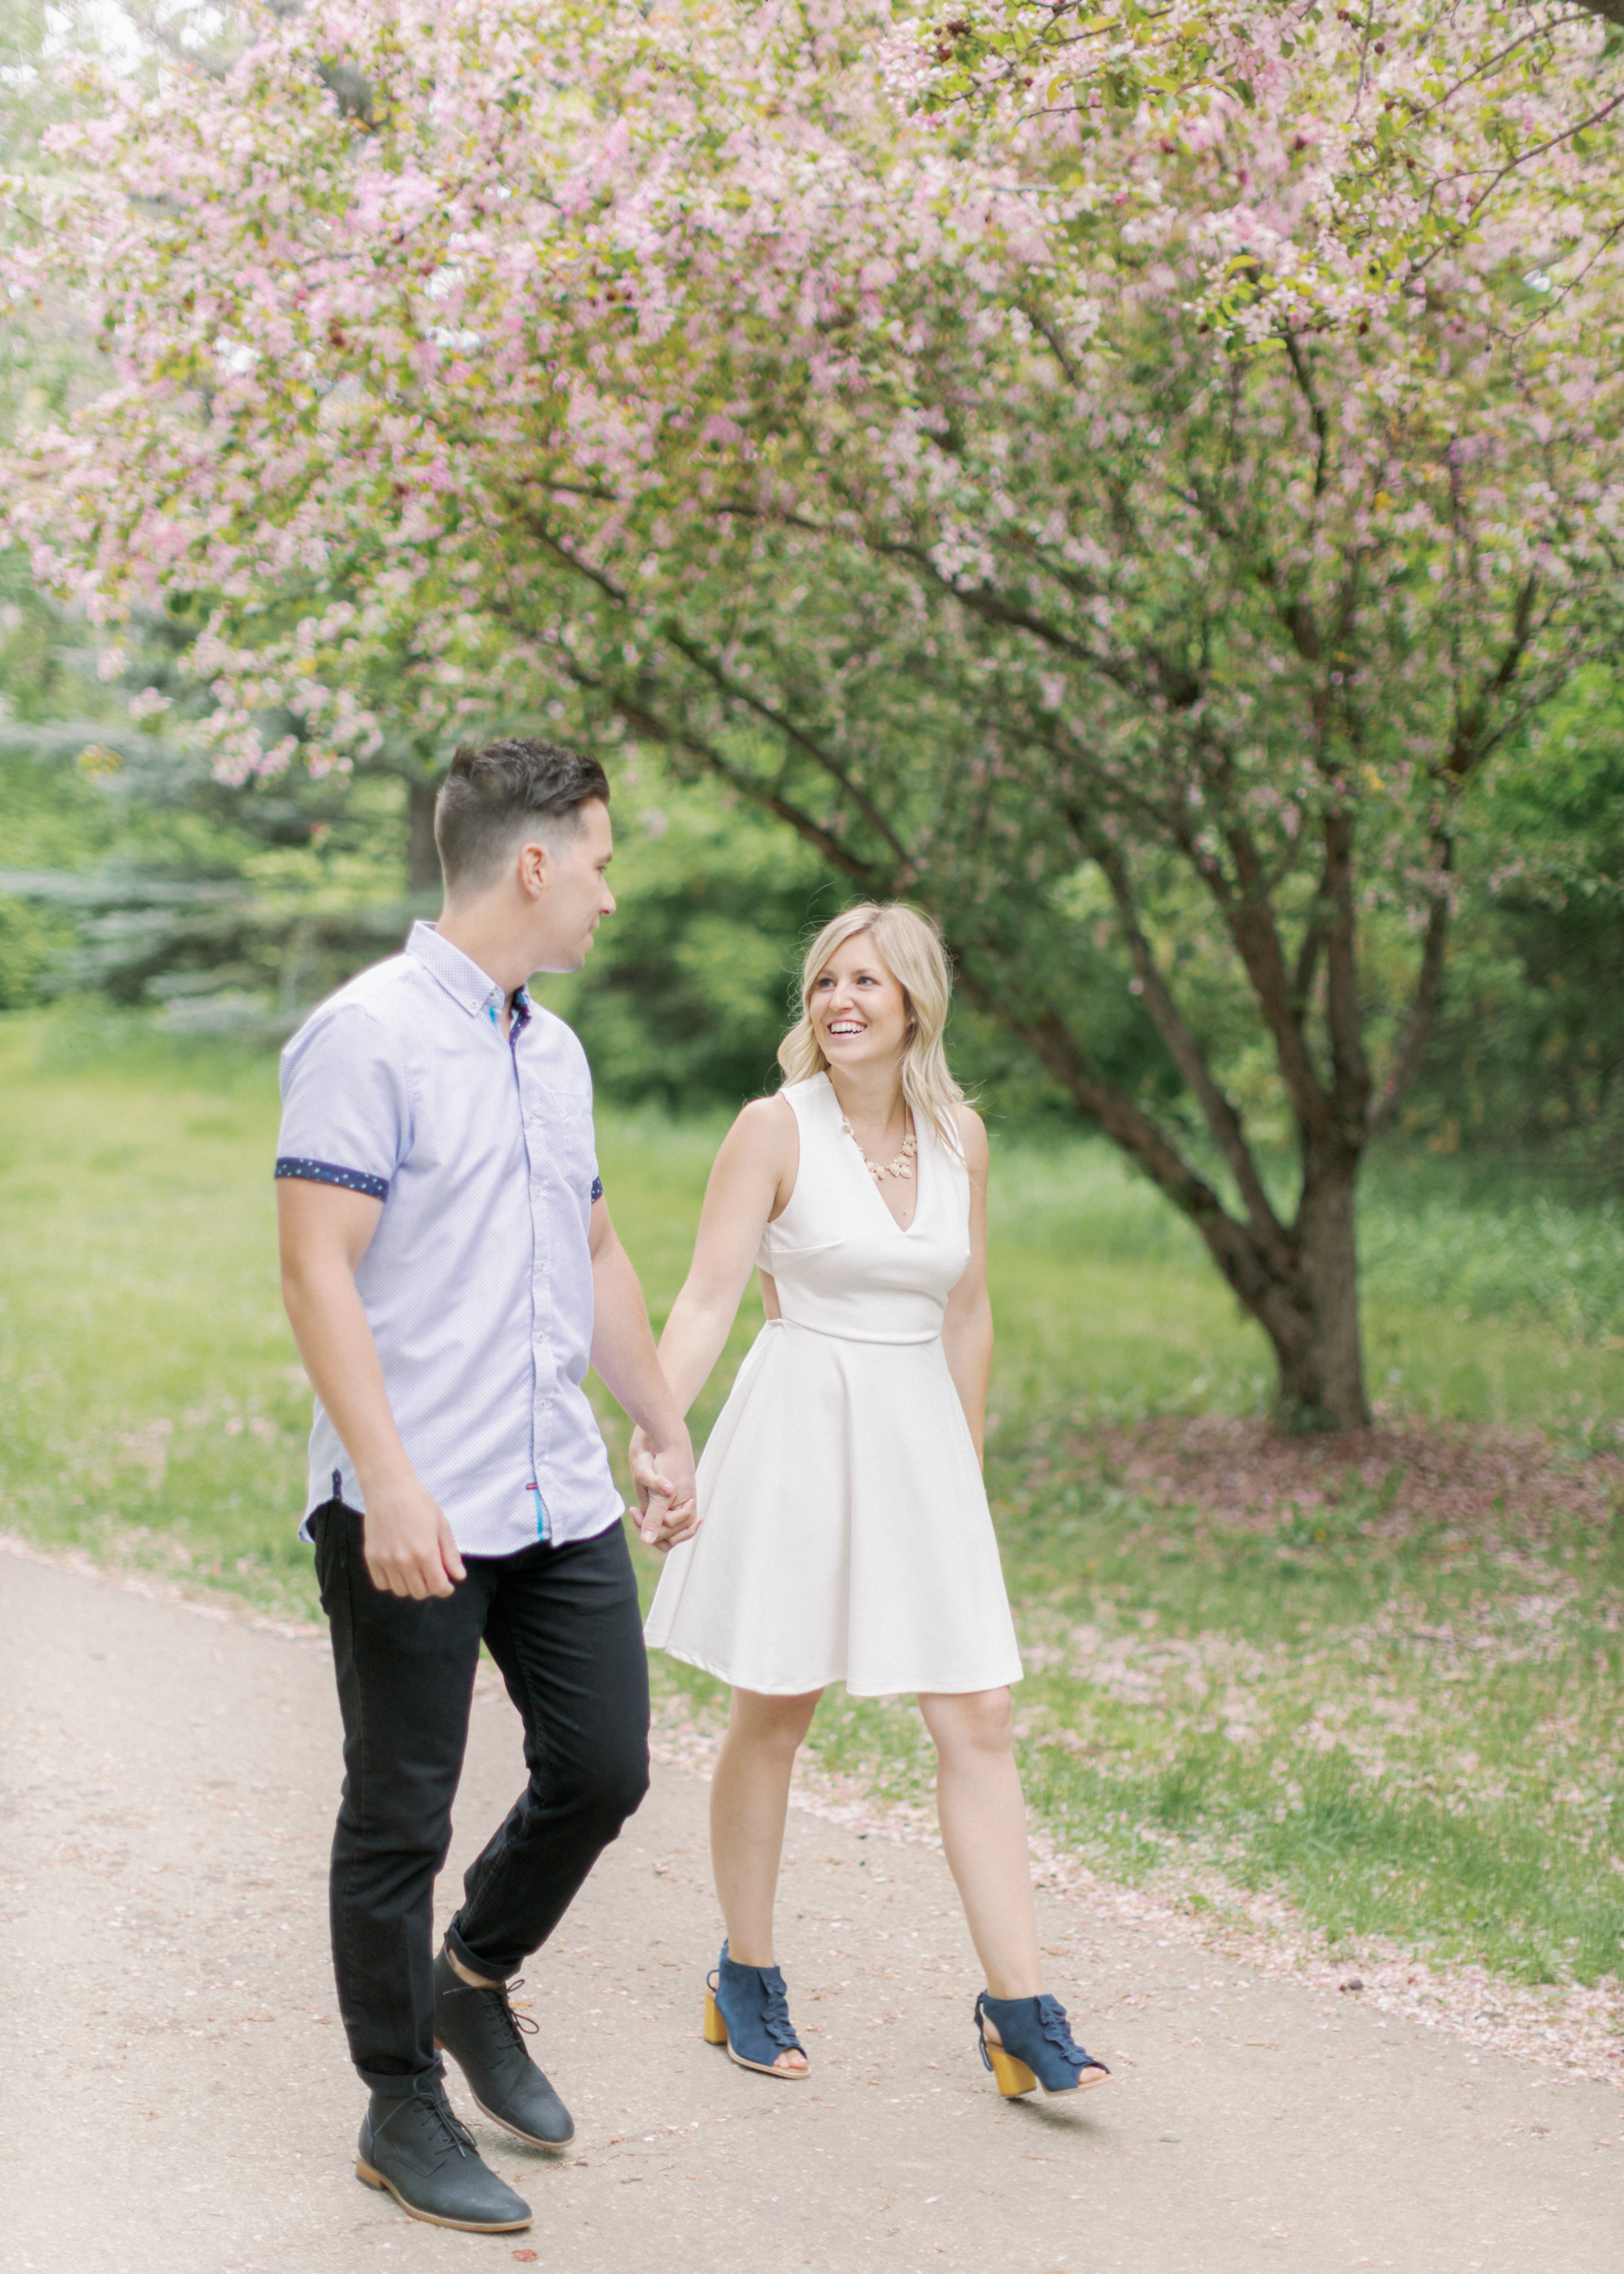 walk and smile during engagement session